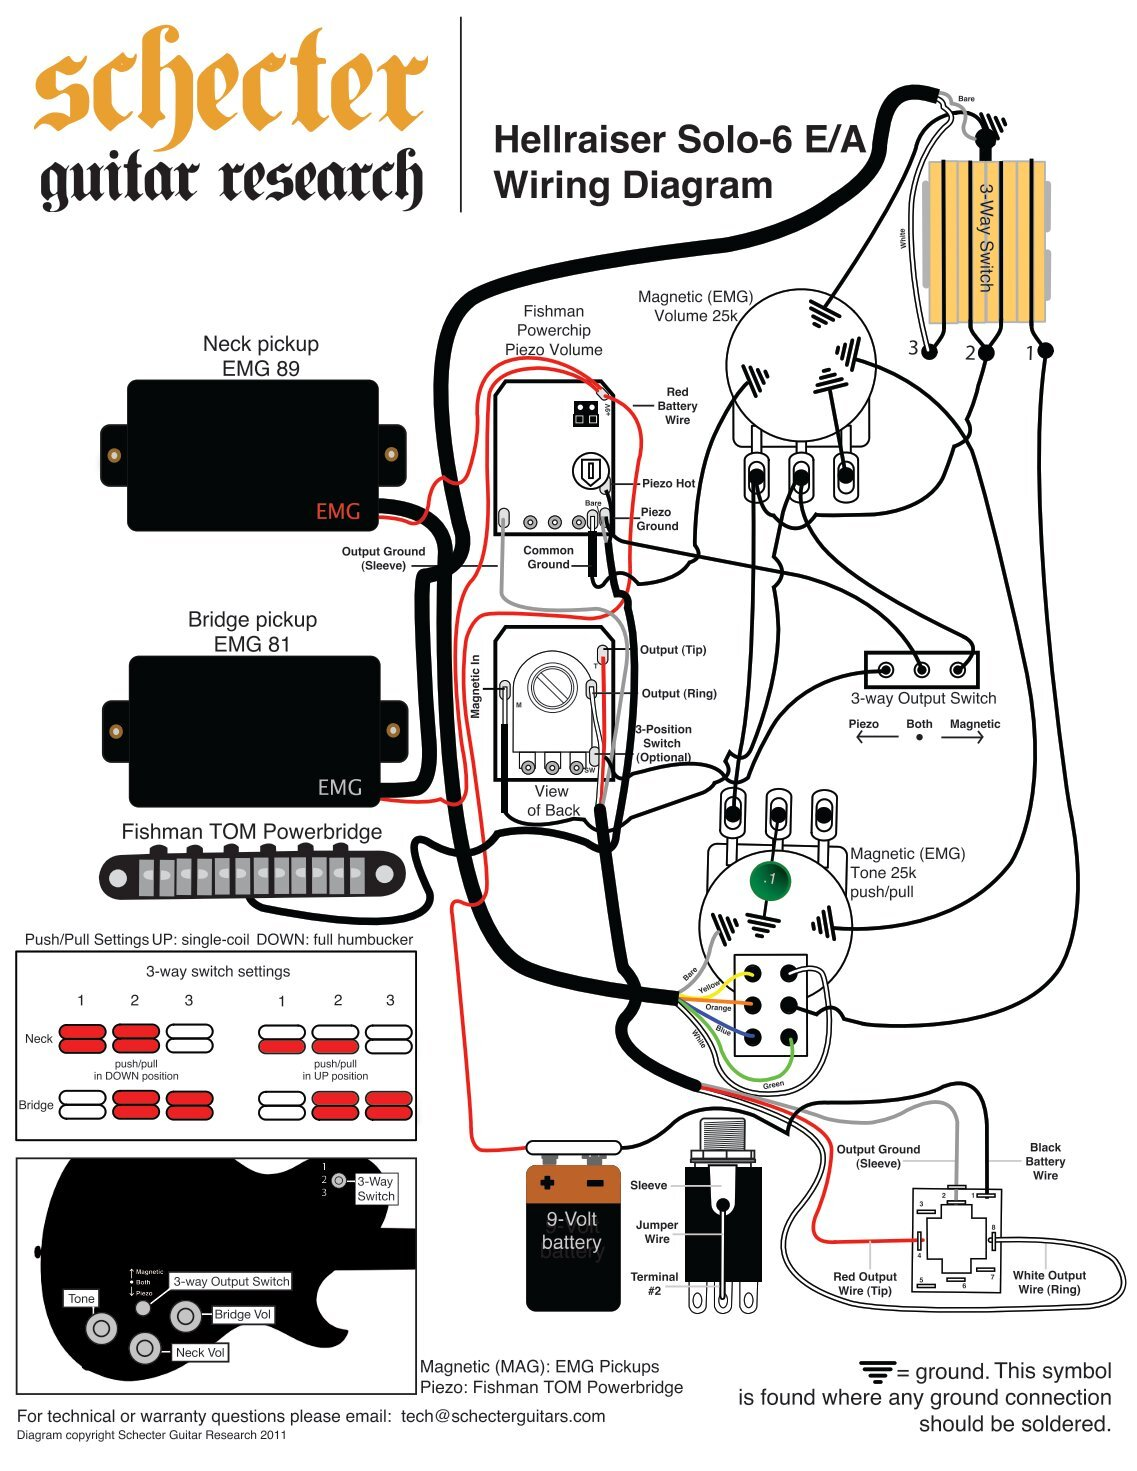 hellraiser solo 6 wiring diagram schecter guitars?resize\\\\\\\\\\\\\\\\\\\\\\\\\\\\\\\\\\\\\\\\\\\\\\\\\\\\\\\\\\\\\\\\\\\\\\\\\\\\\\\\\\\\\\\\\\\\\\\\\\\\\\\\\\\\\\\\\\\\\\\\\\\\\\\=665%2C860\\\\\\\\\\\\\\\\\\\\\\\\\\\\\\\\\\\\\\\\\\\\\\\\\\\\\\\\\\\\\\\\\\\\\\\\\\\\\\\\\\\\\\\\\\\\\\\\\\\\\\\\\\\\\\\\\\\\\\\\\\\\\\\&ssl\\\\\\\\\\\\\\\\\\\\\\\\\\\\\\\\\\\\\\\\\\\\\\\\\\\\\\\\\\\\\\\\\\\\\\\\\\\\\\\\\\\\\\\\\\\\\\\\\\\\\\\\\\\\\\\\\\\\\\\\\\\\\\\=1 outstanding zakk wylde emg wiring diagram pictures wiring emg wiring schematics at eliteediting.co